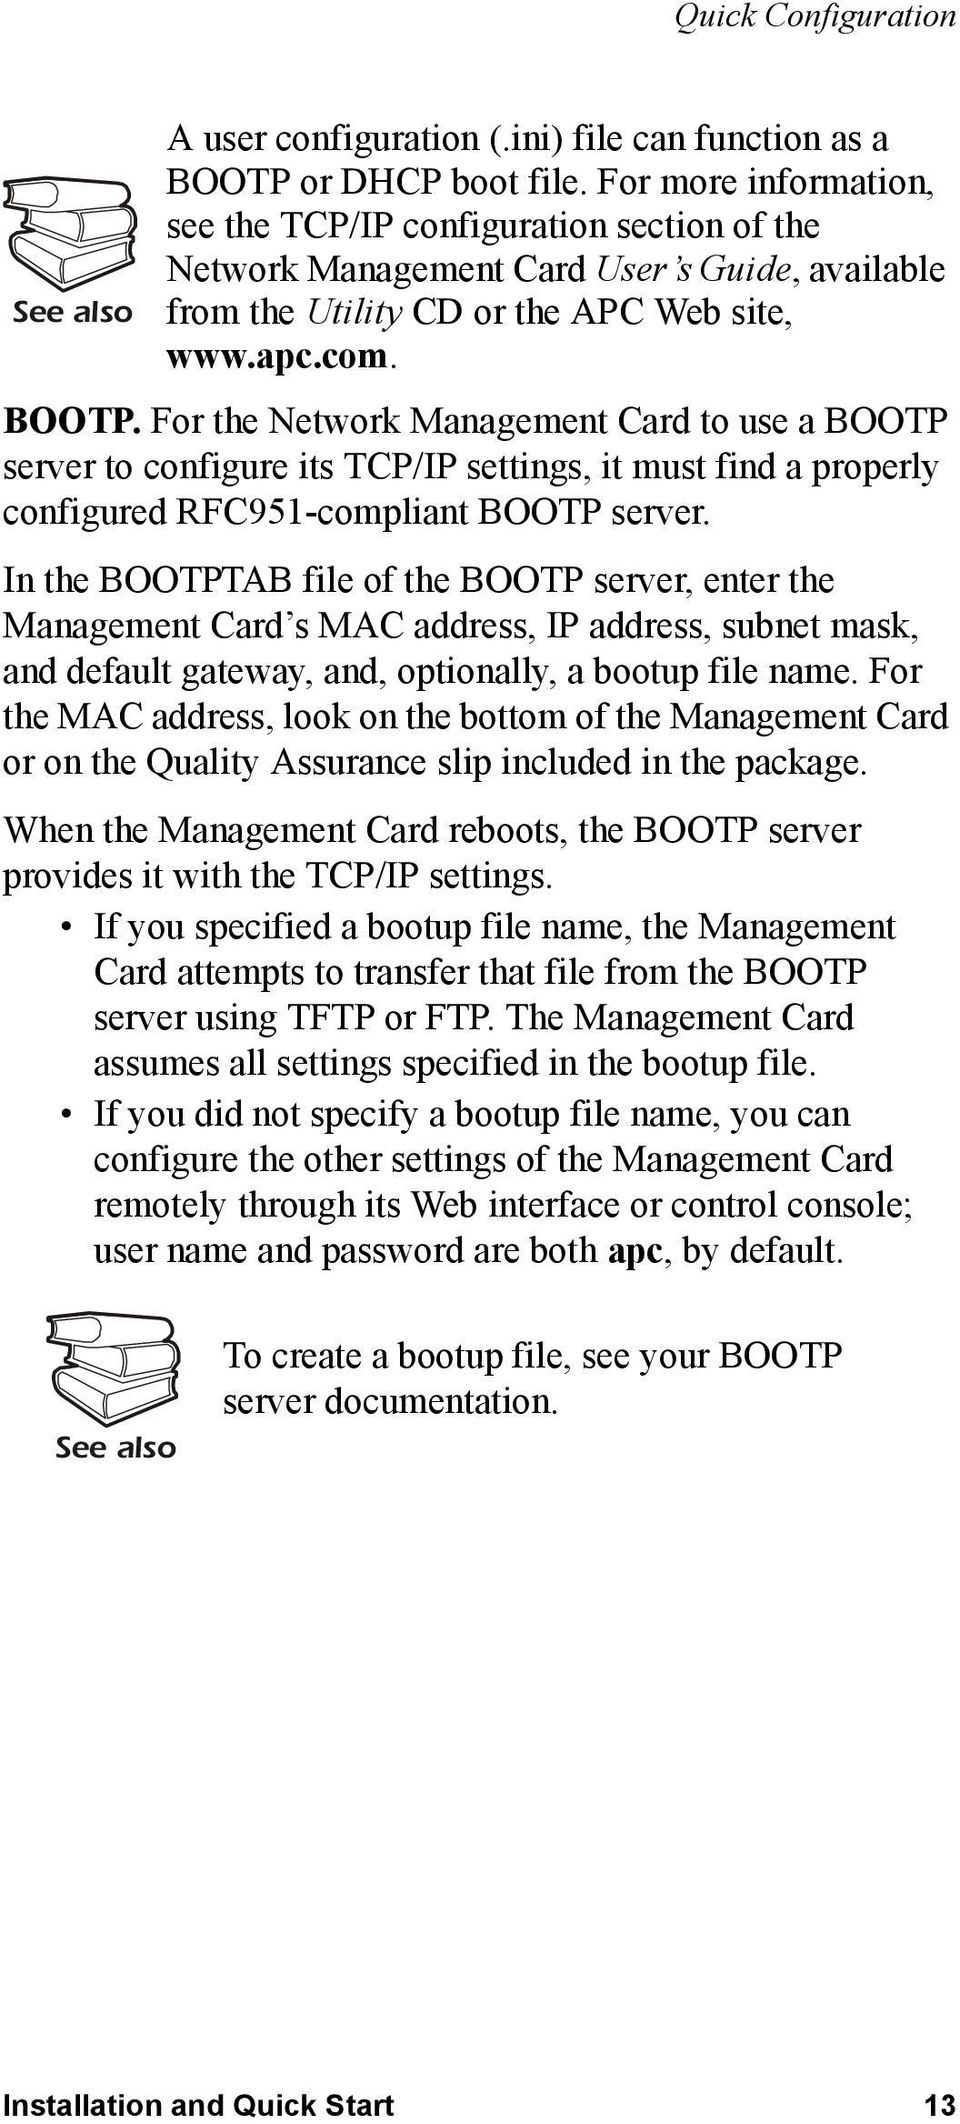 For the Network Management Card to use a BOOTP server to configure its TCP/IP settings, it must find a properly configured RFC951-compliant BOOTP server.